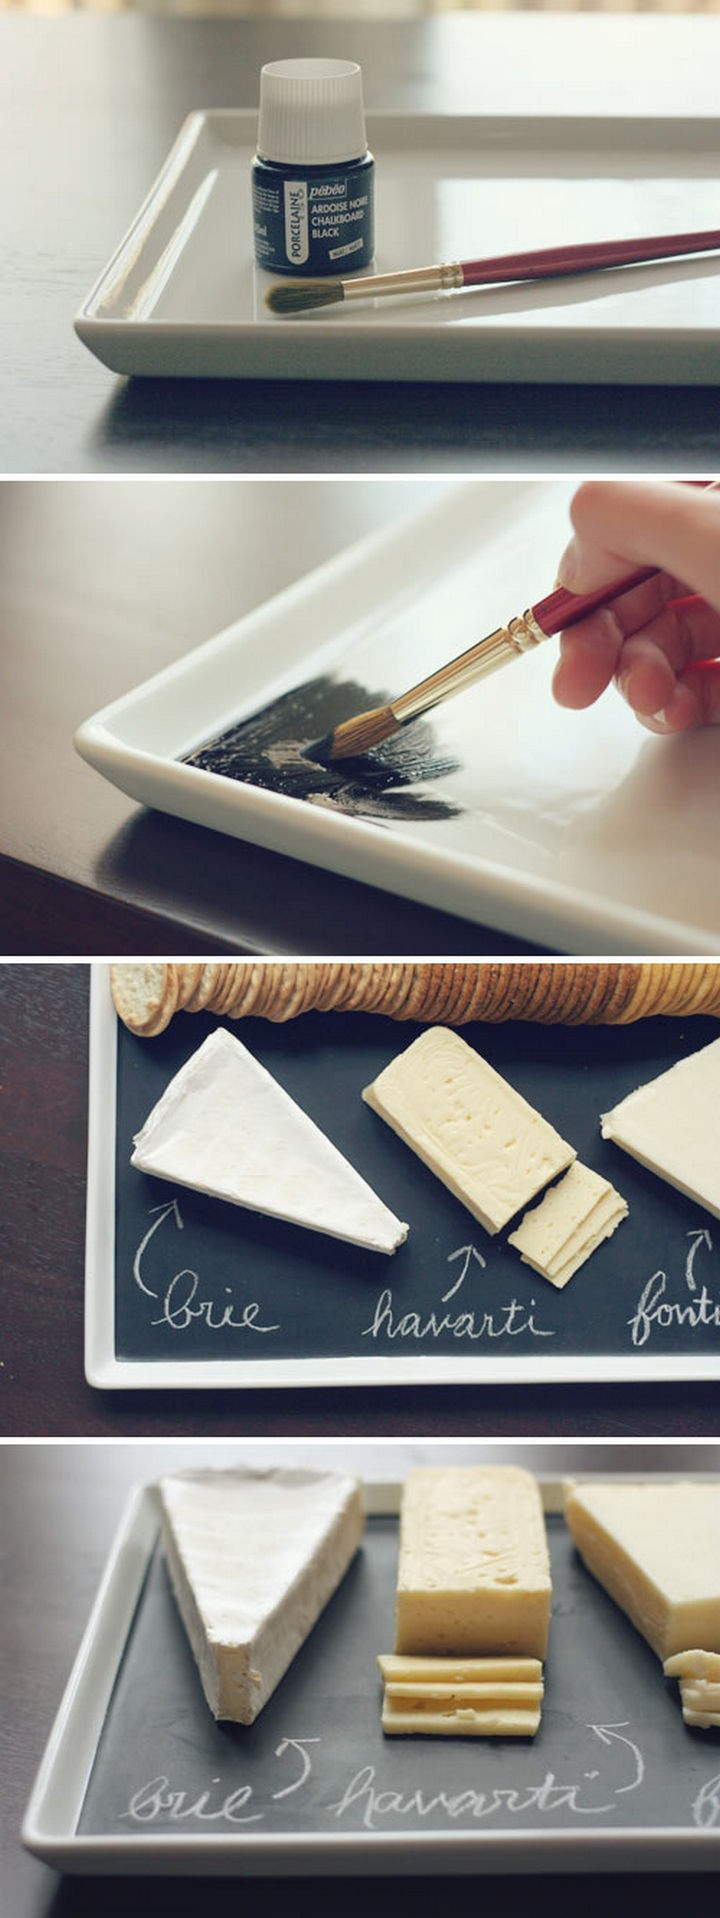 16 Party Hacks - Make a DIY chalkboard serving platter for cheese or other snacks.